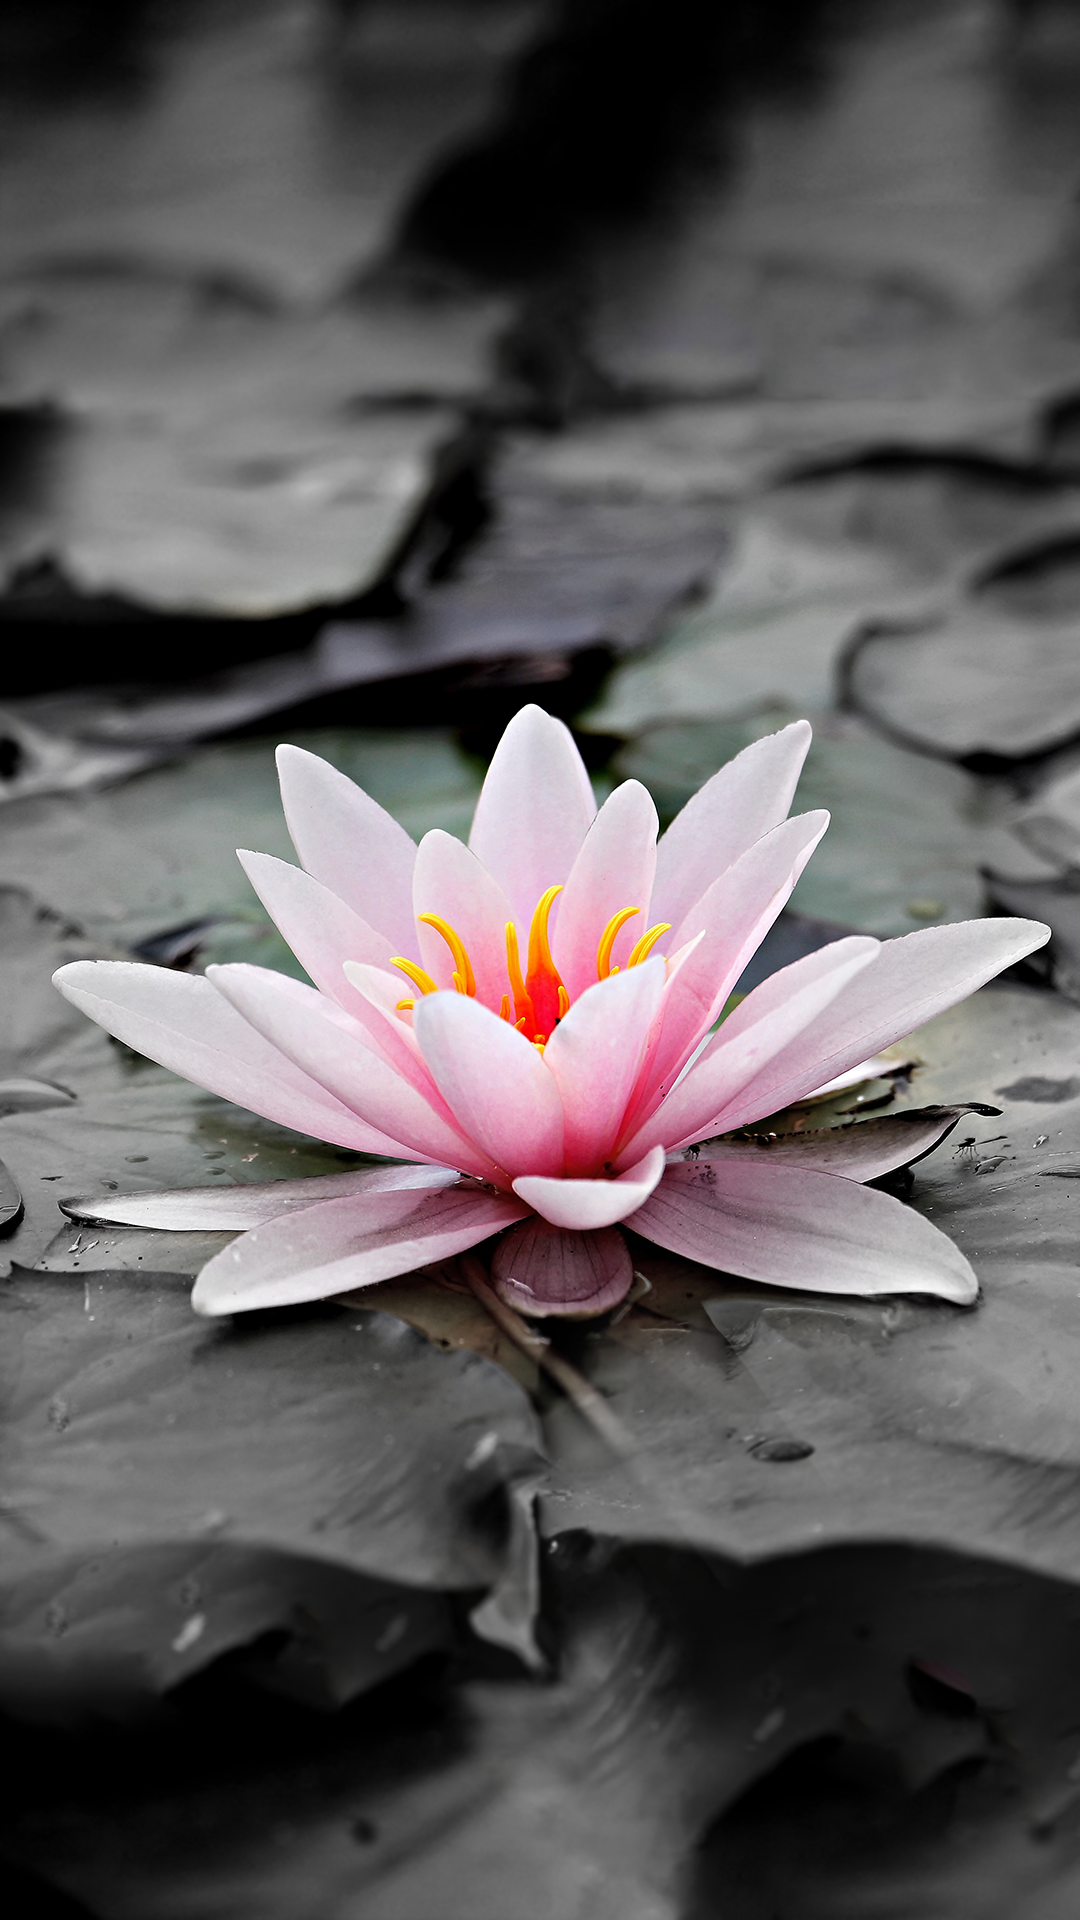 Ultra Hd Sacred Lily Wallpaper For Your Mobile Phone 0503